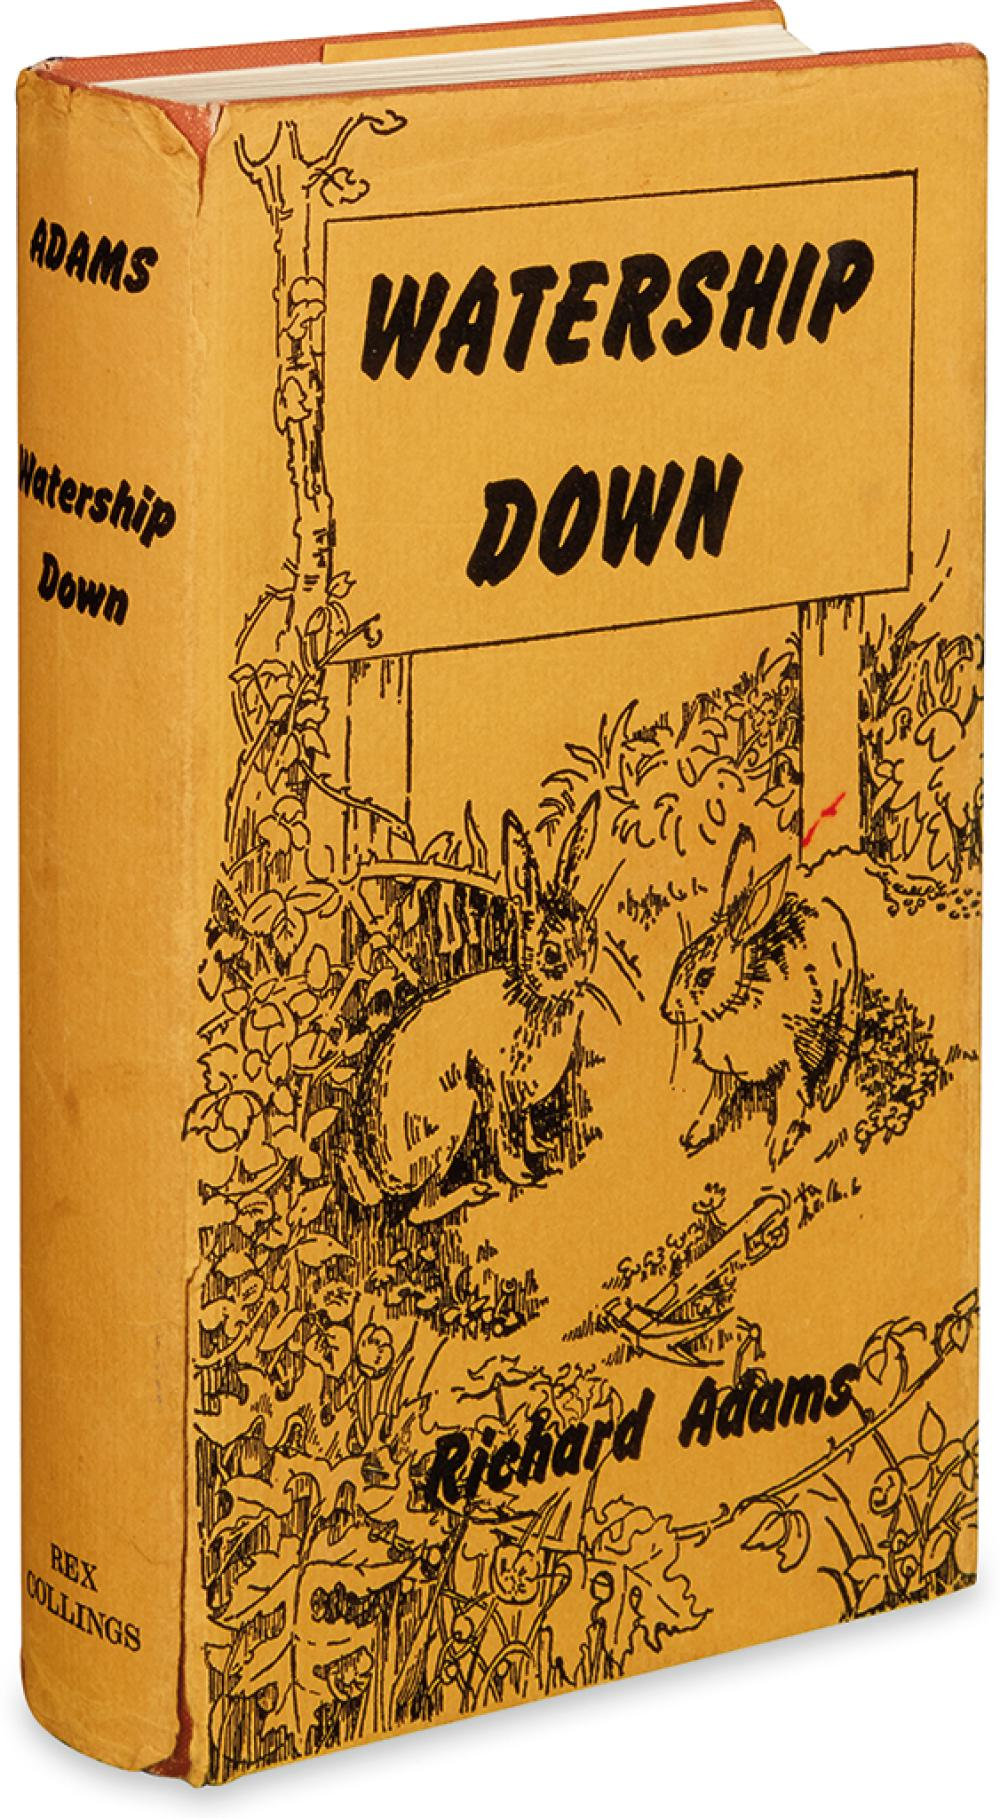 (CHILDREN'S LITERATURE.) ADAMS, RICHARD. Watership Down.